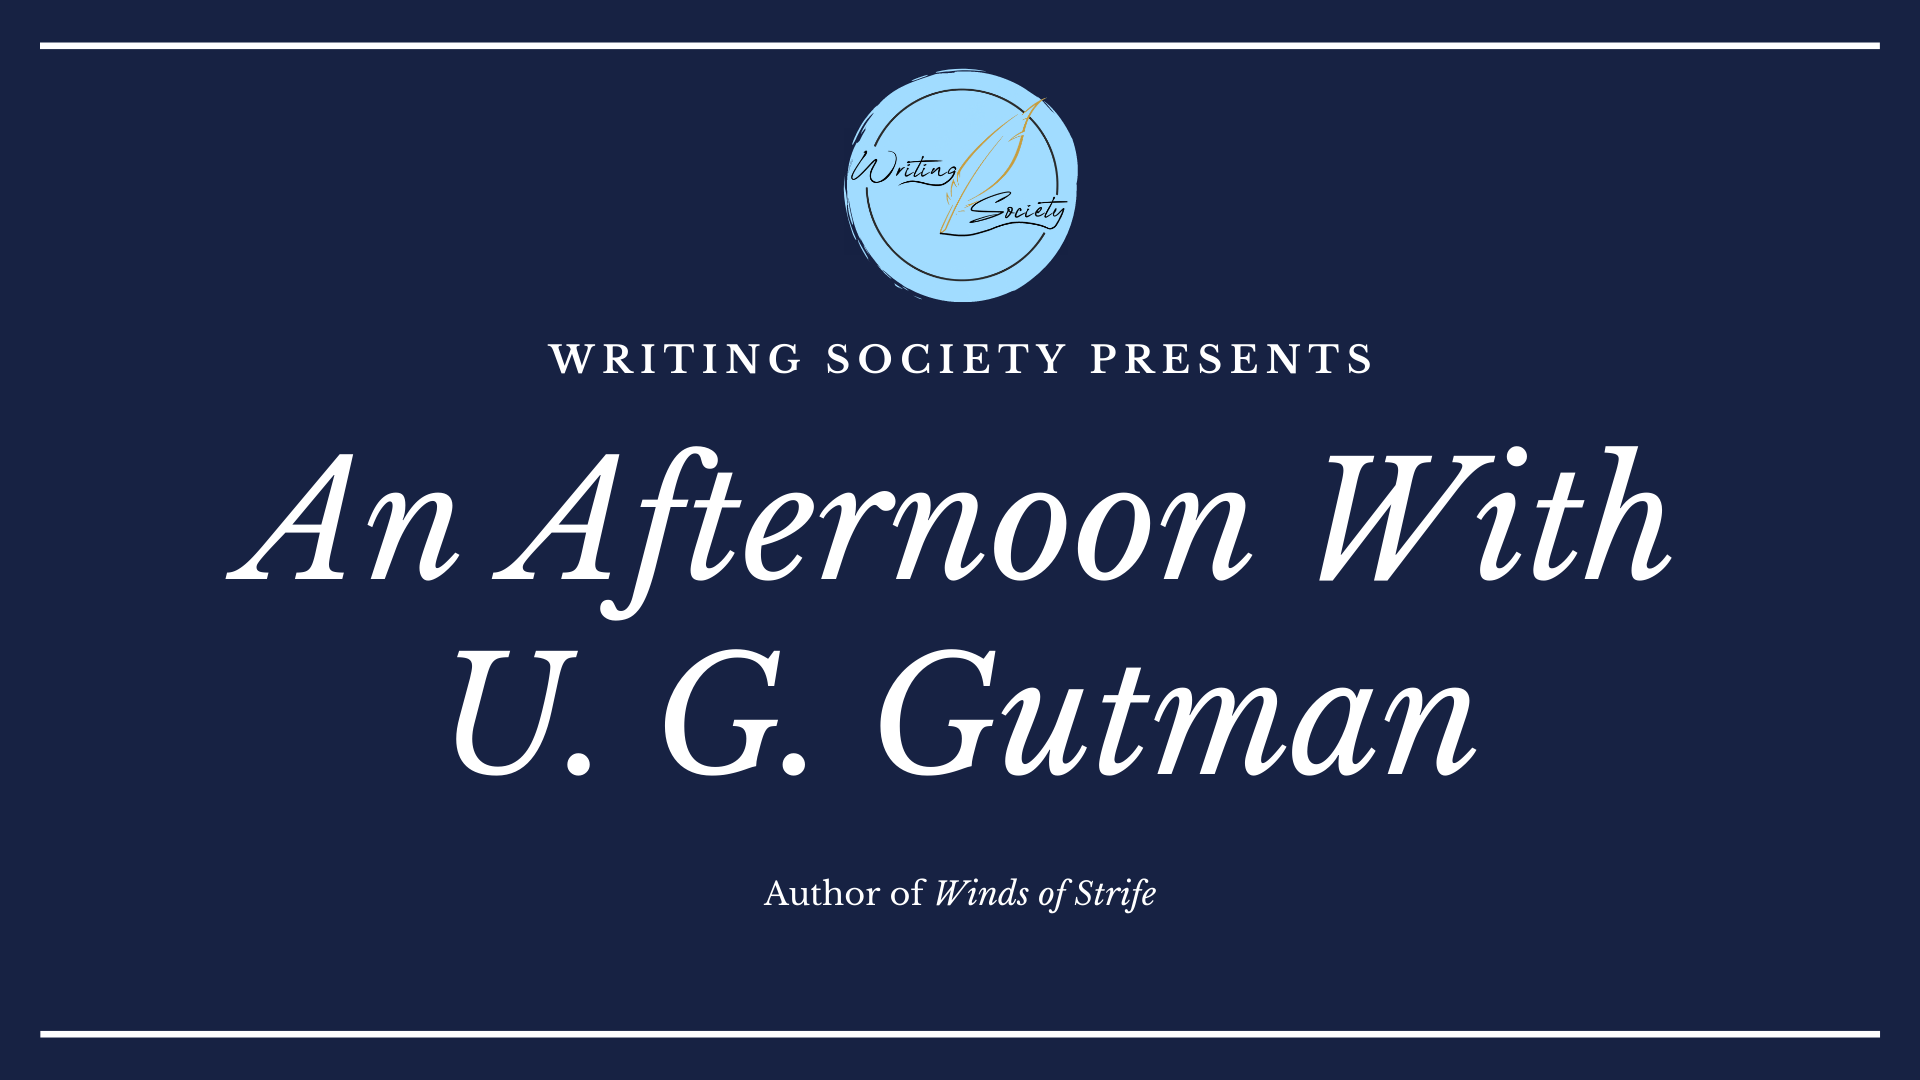 An Afternoon with U. G. Gutman - OPEN TO EVERYONE! Saturday 27th February